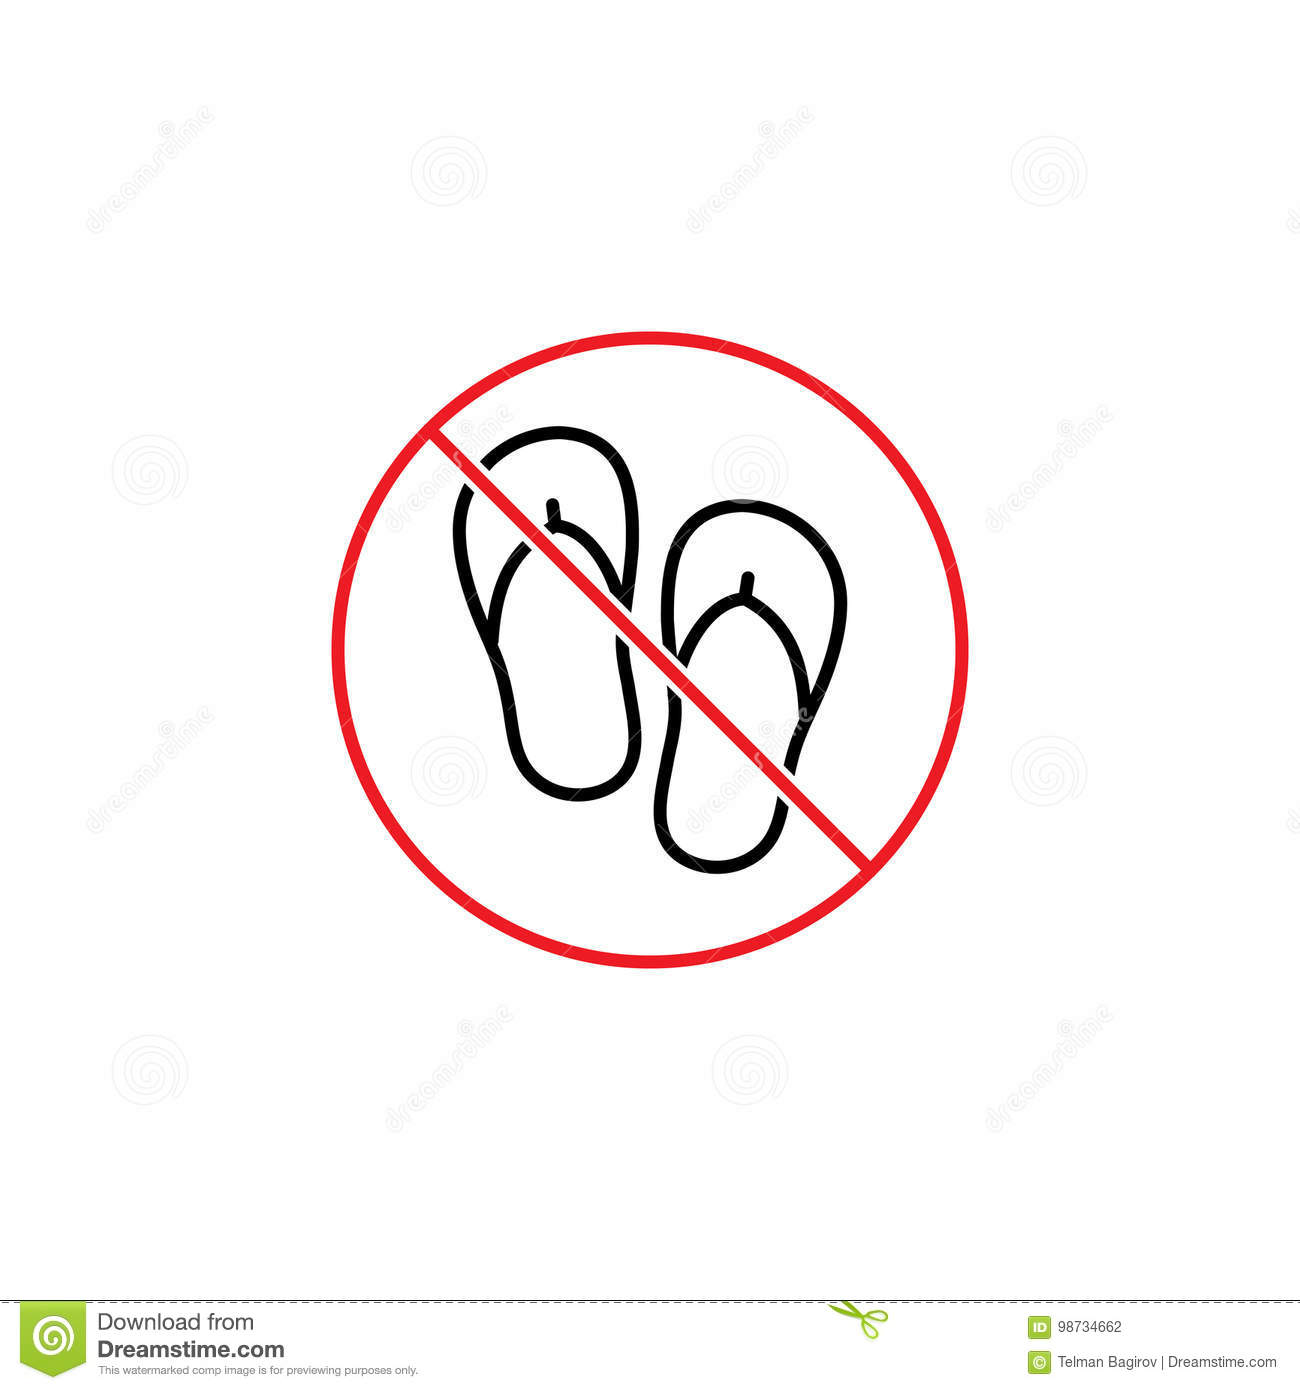 ae4ebdae8d5a3 Thin line no slipper sign on white background. More similar stock  illustrations